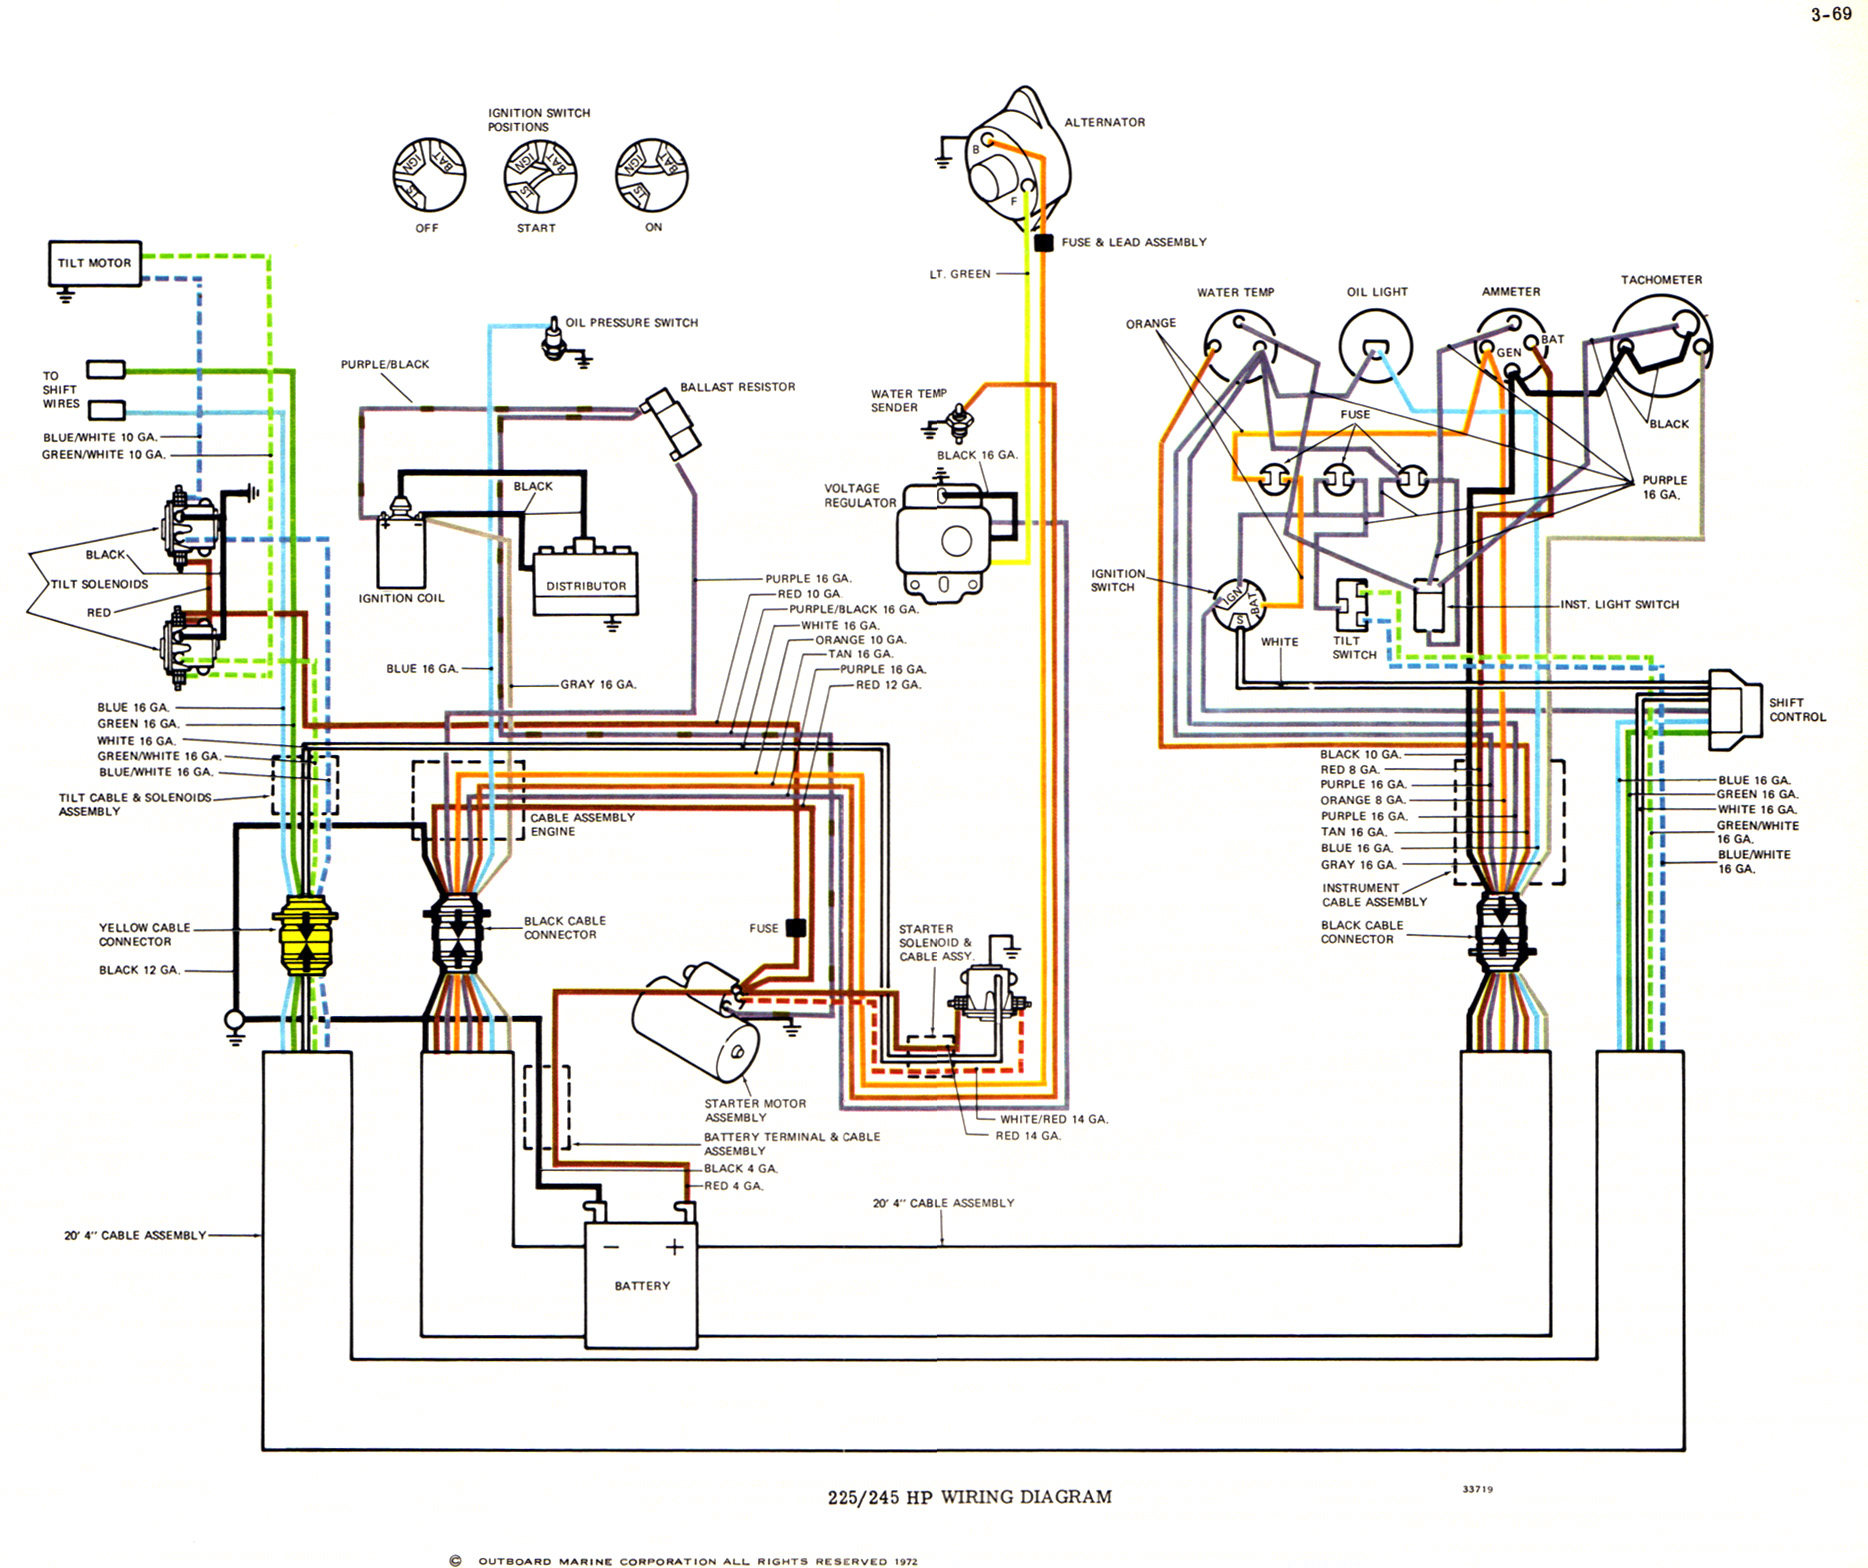 73_OMC_V8_all_big omc wiring diagram basic boat wiring schematic \u2022 wiring diagrams sea ray boat wiring diagram at bayanpartner.co